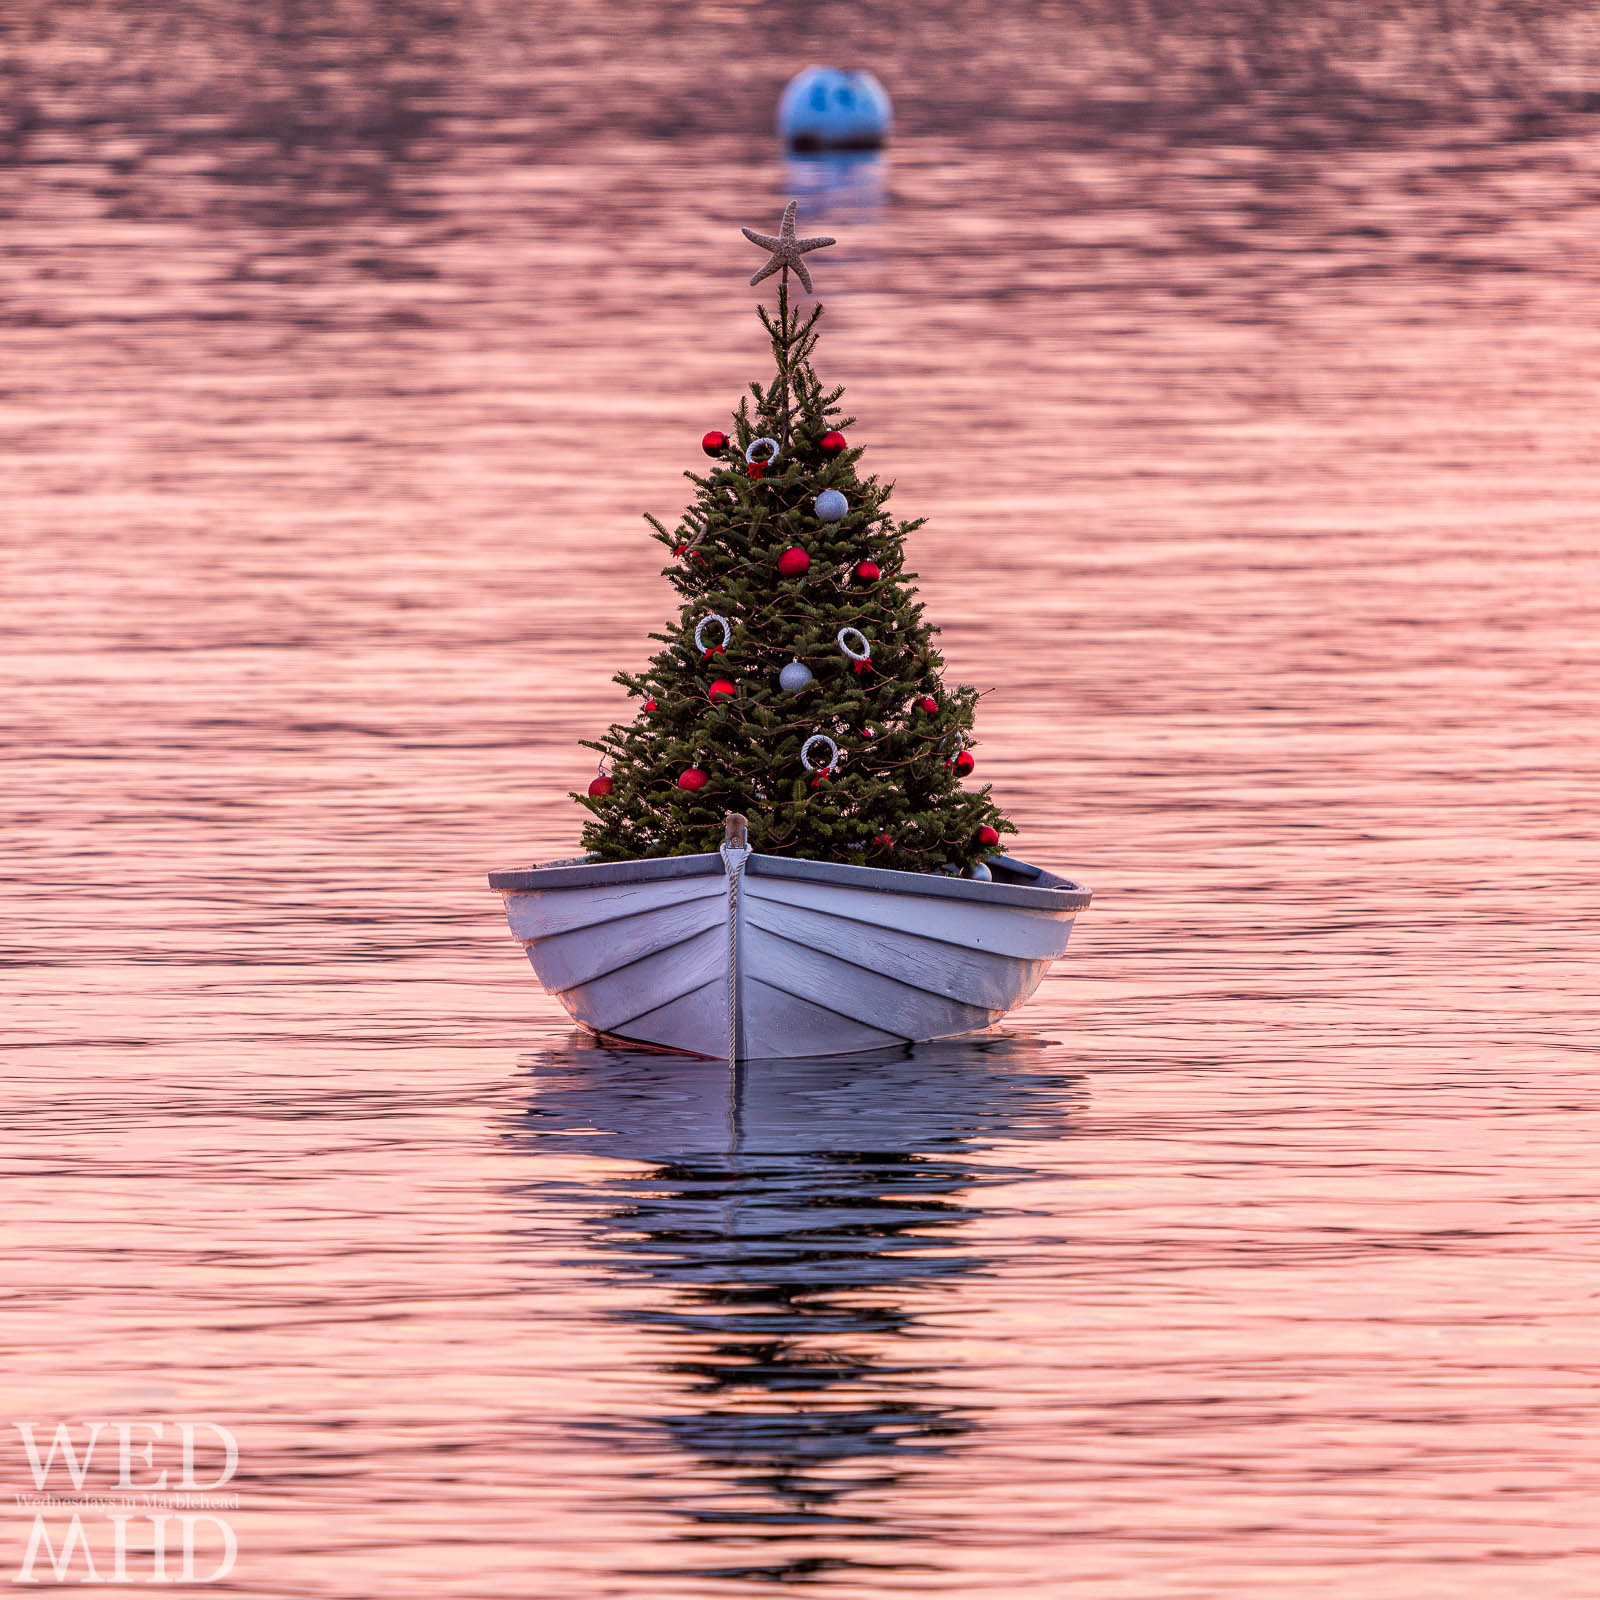 The annual tradition of the First Harbor company's Christma tree in a boat is captured at dawn in little harbor as the colors of the sky reflect in the still waters